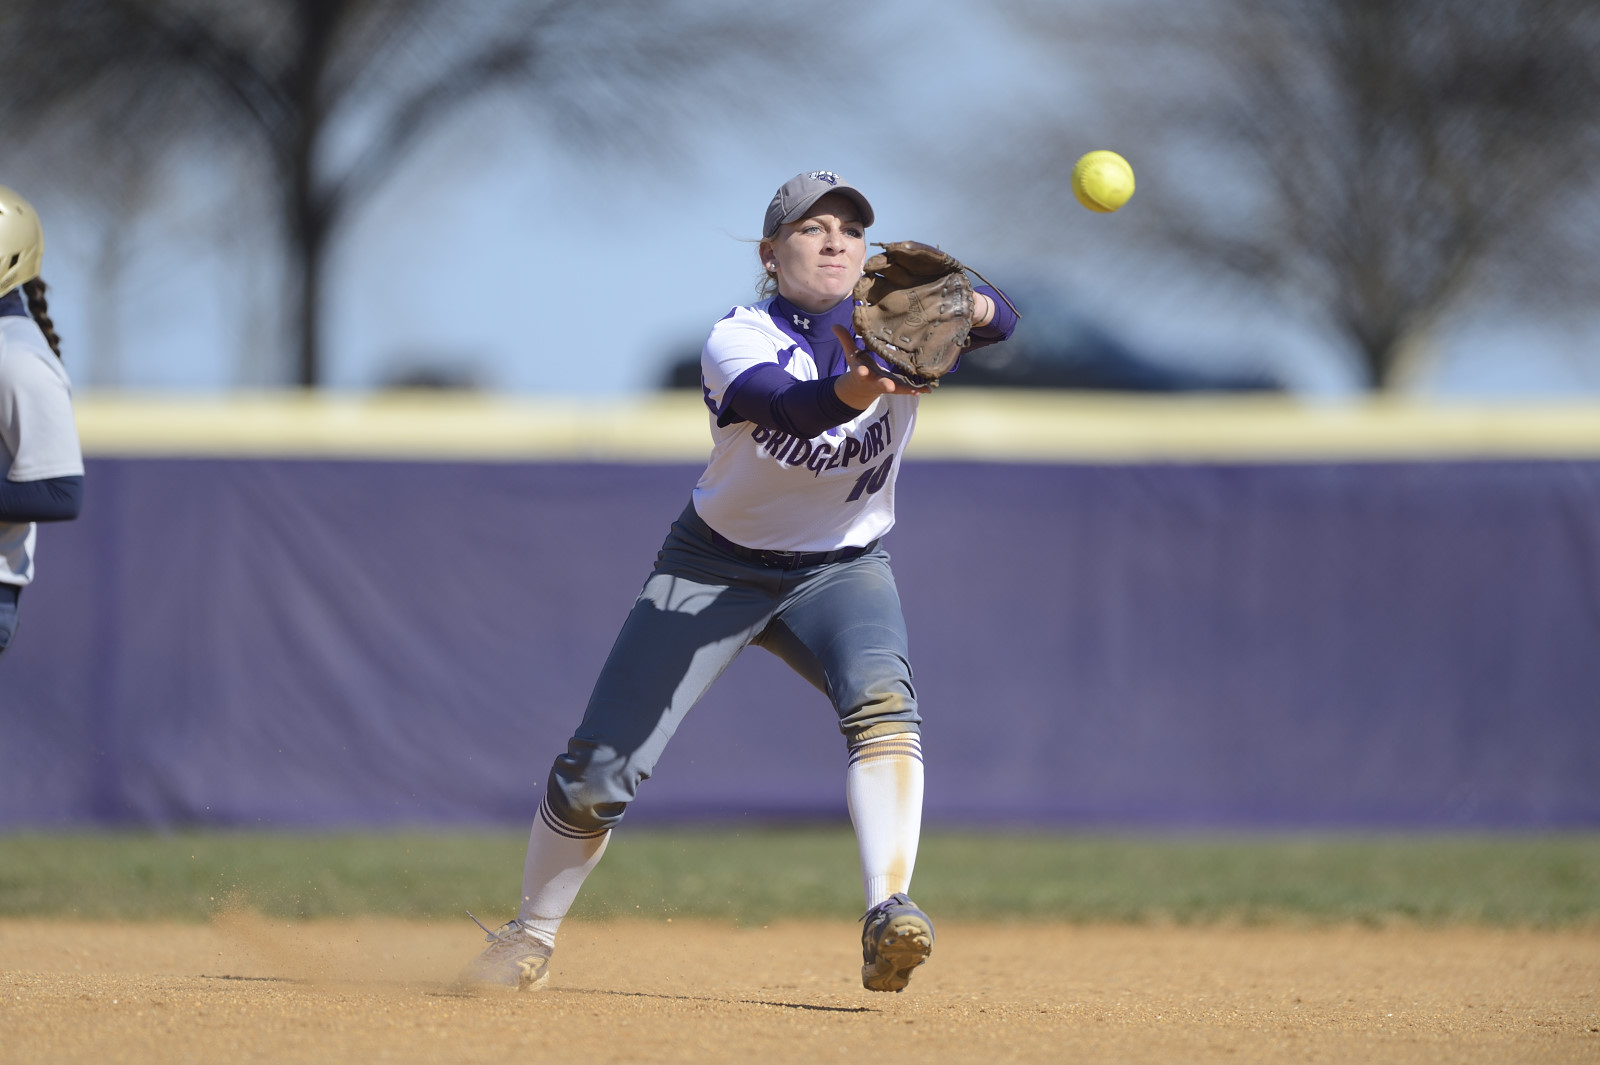 Purple Knights Split A Tuesday Doubleheader With ECC Softball-Leading Mercy College